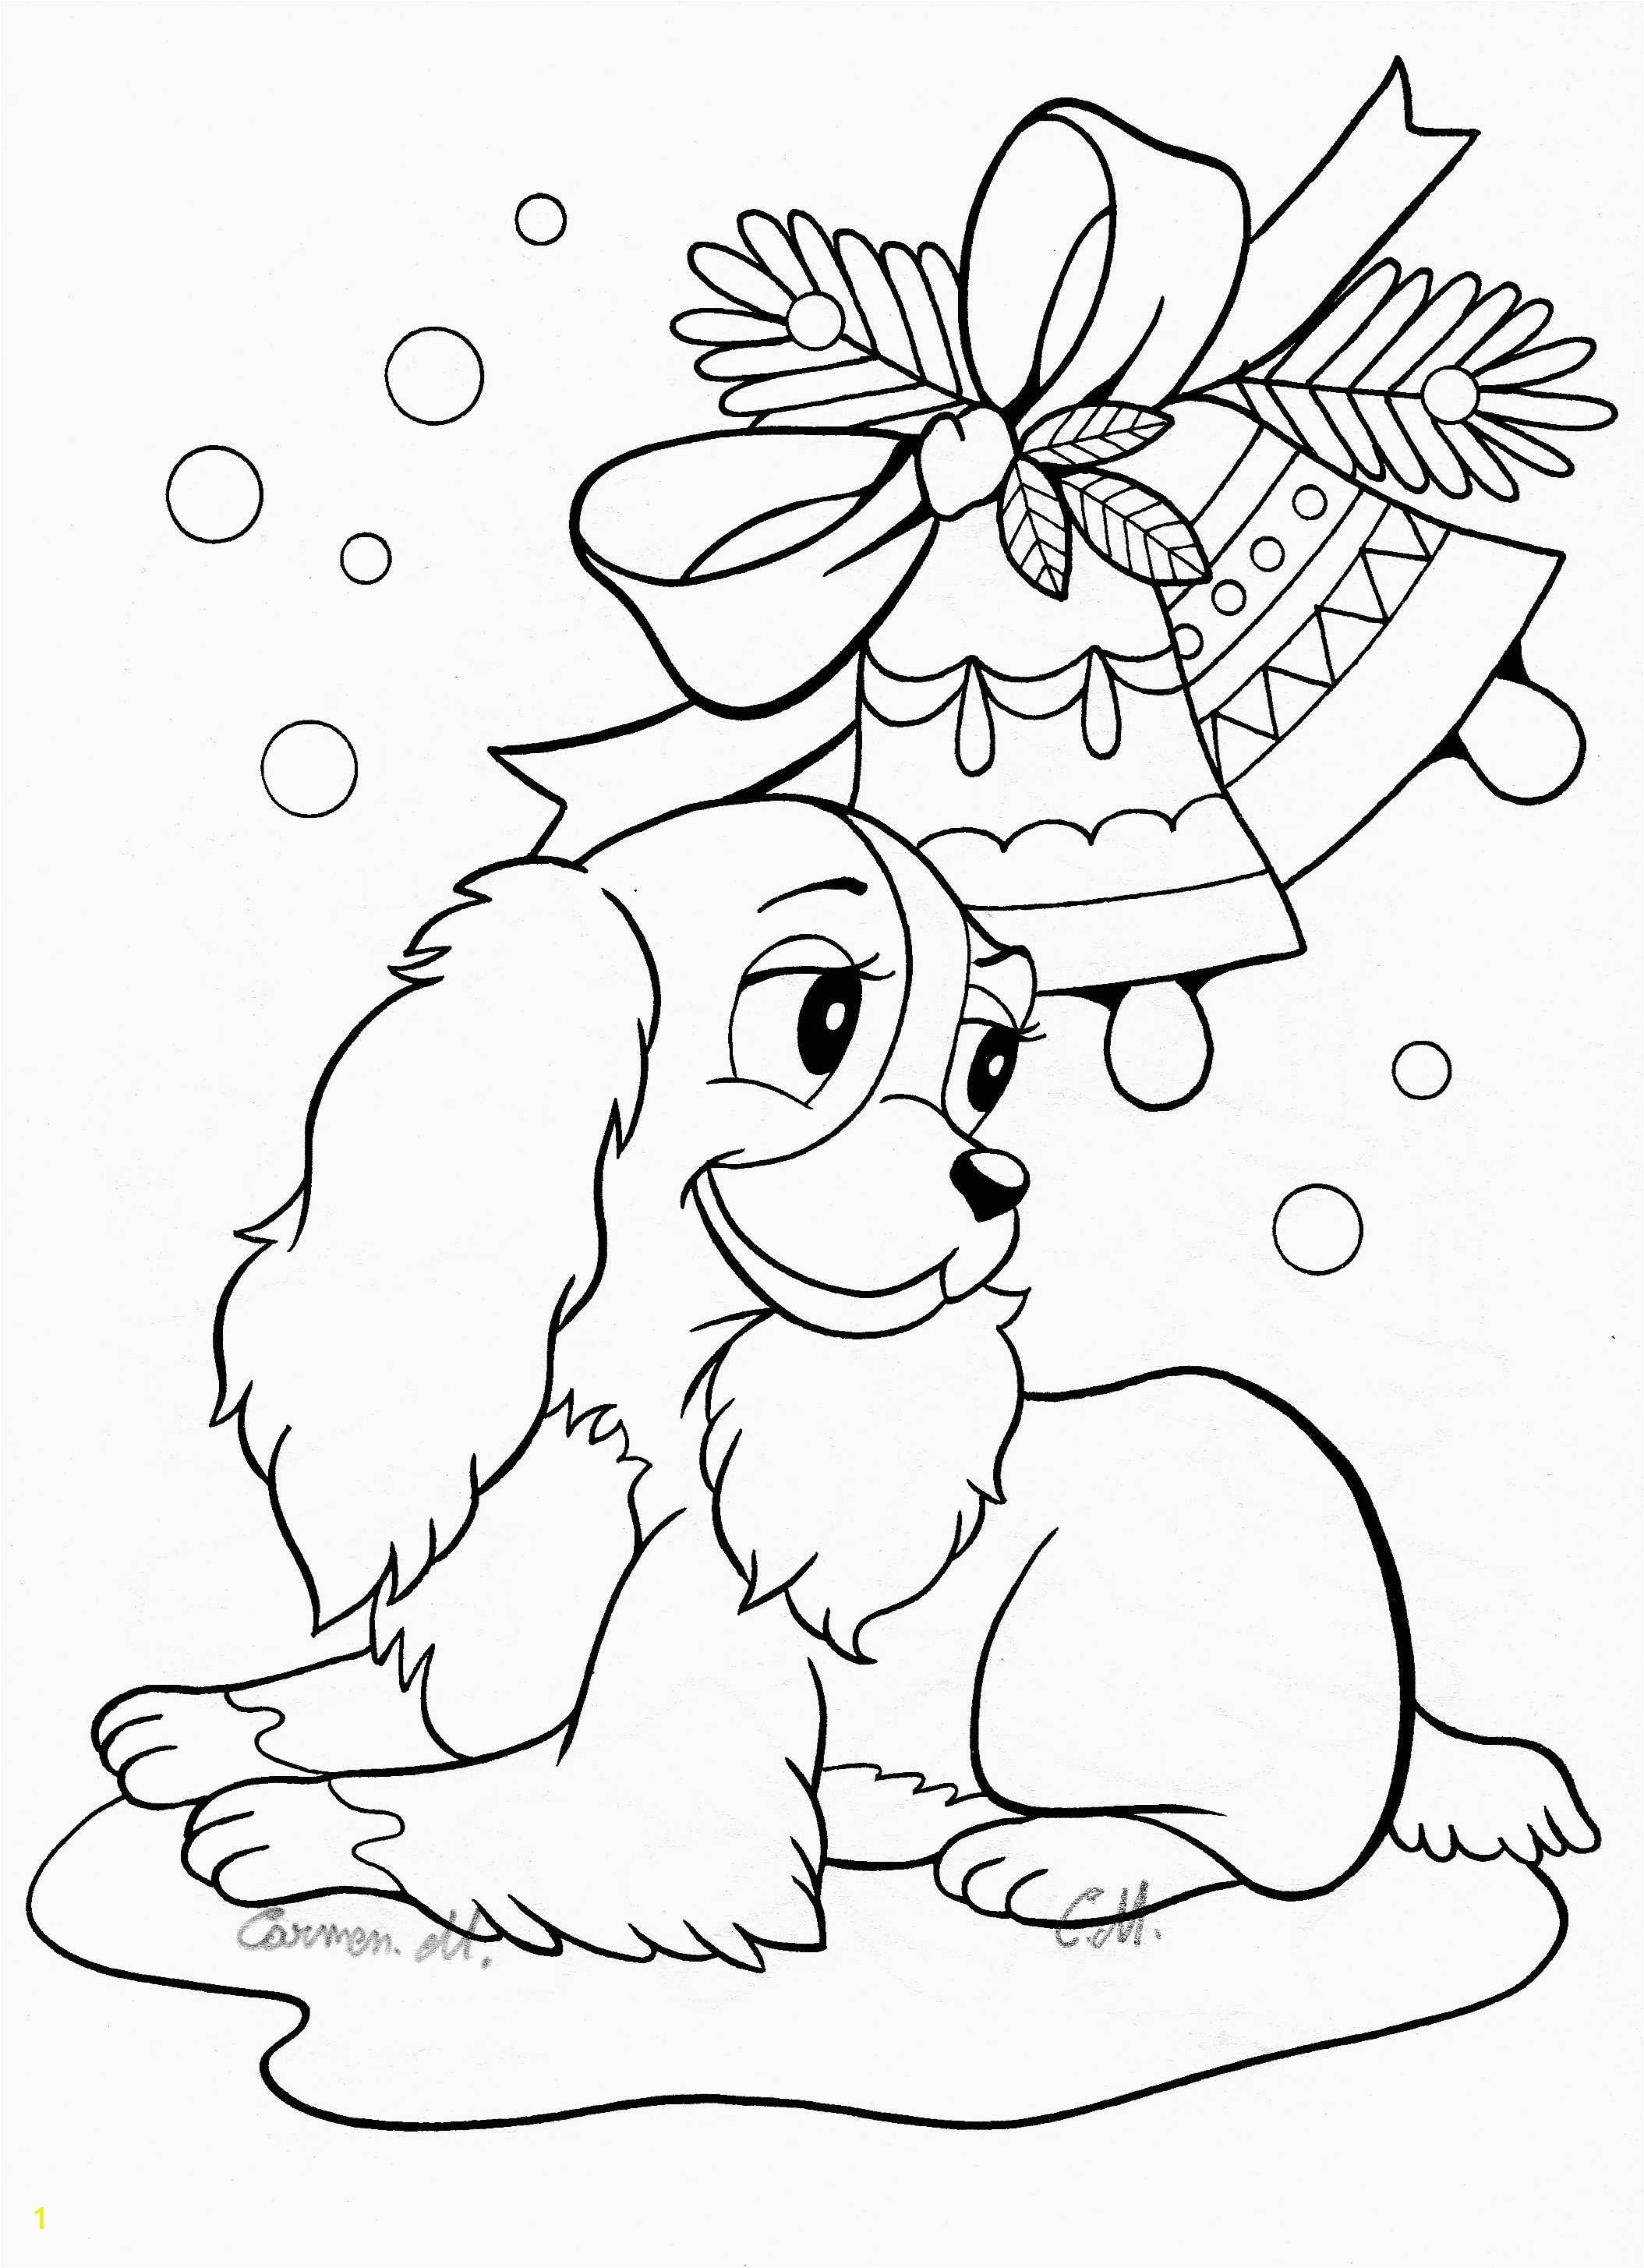 cute dog coloring pages unique awesome coloring pages cute animals unique printable od dog coloring